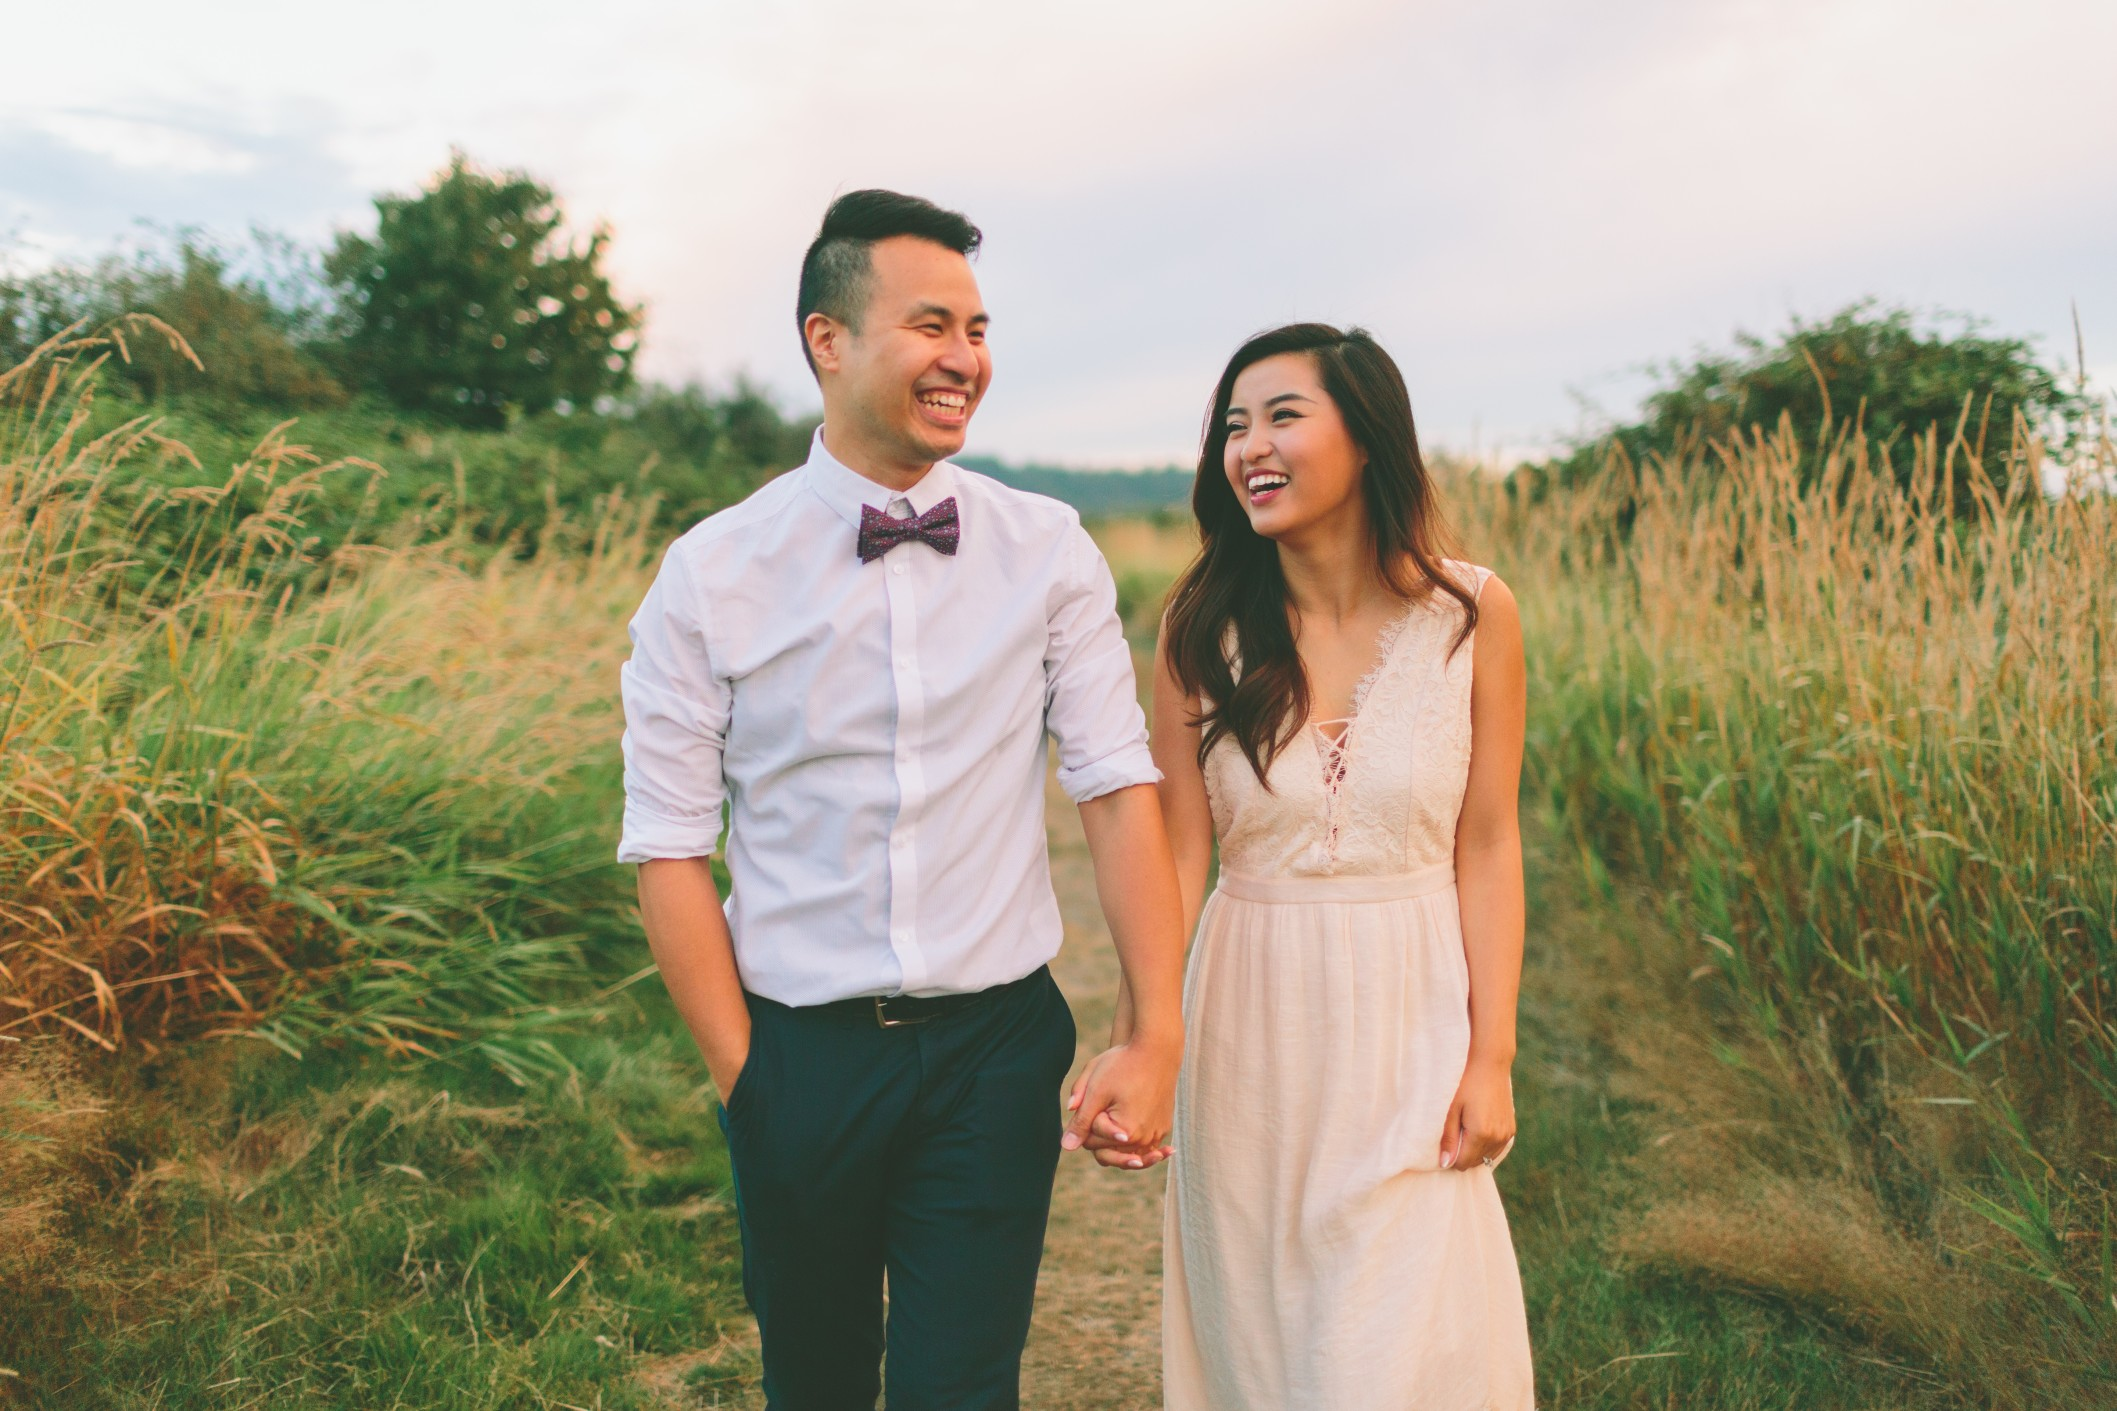 10 Magical Ways To Get ~Super Romantic~ With Your Partner